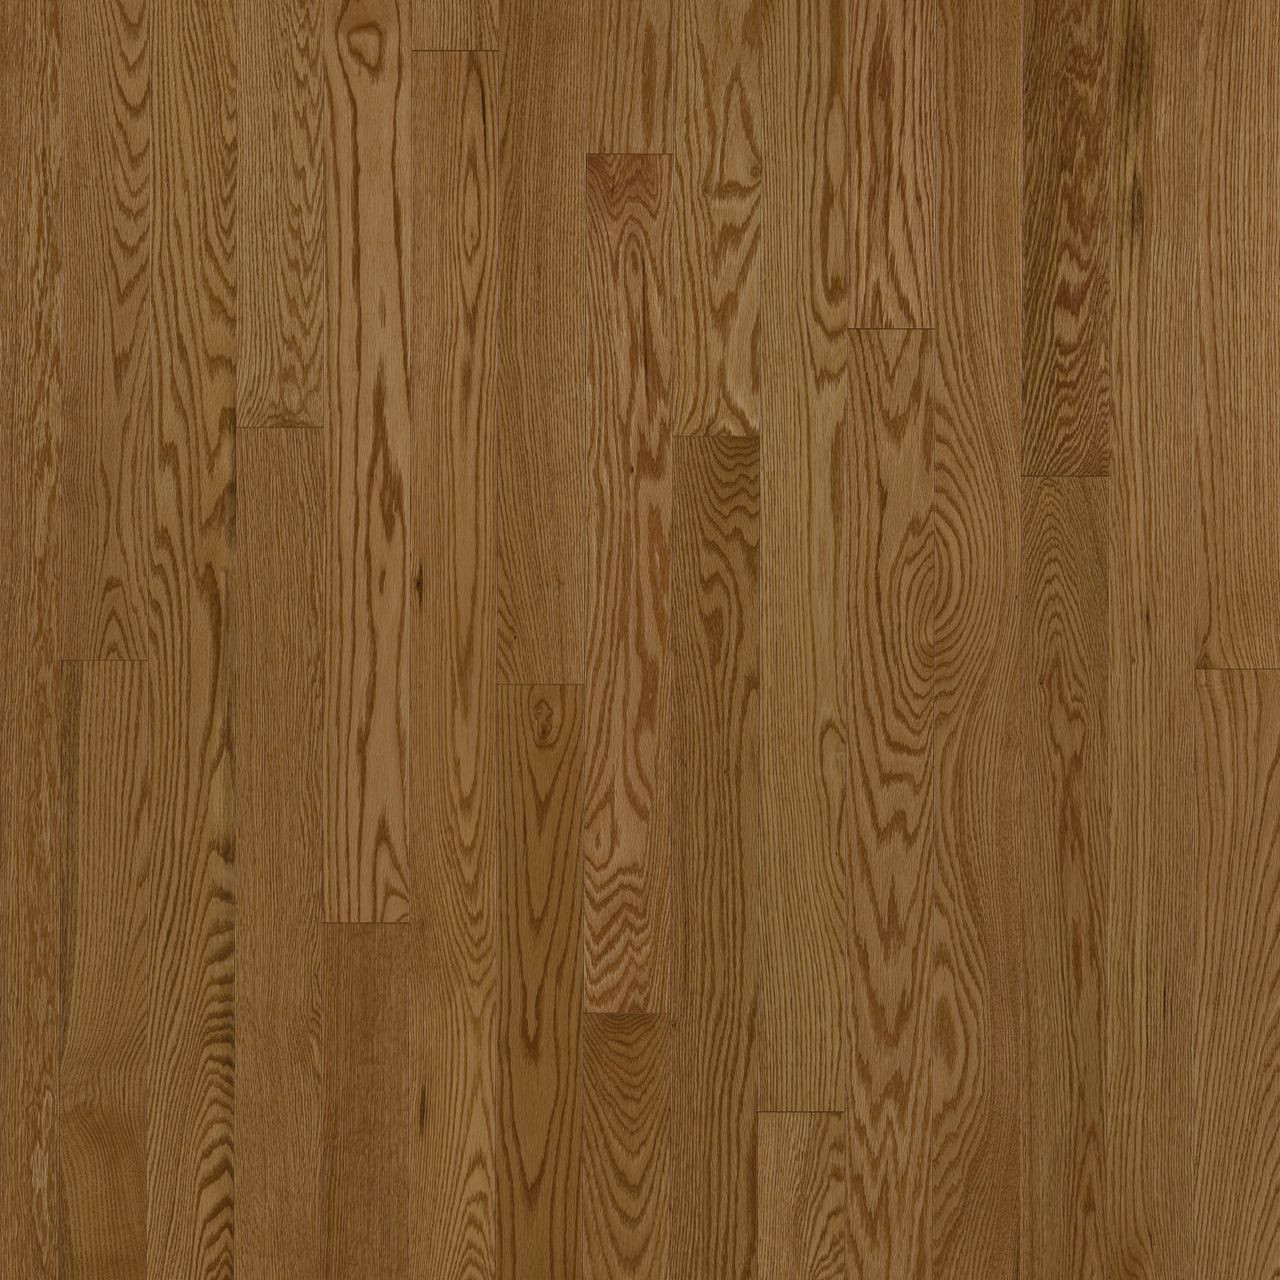 white oak hardwood flooring canada of red oak honey hardwood flooring preverco preverco hardwood throughout red oak honey hardwood flooring preverco